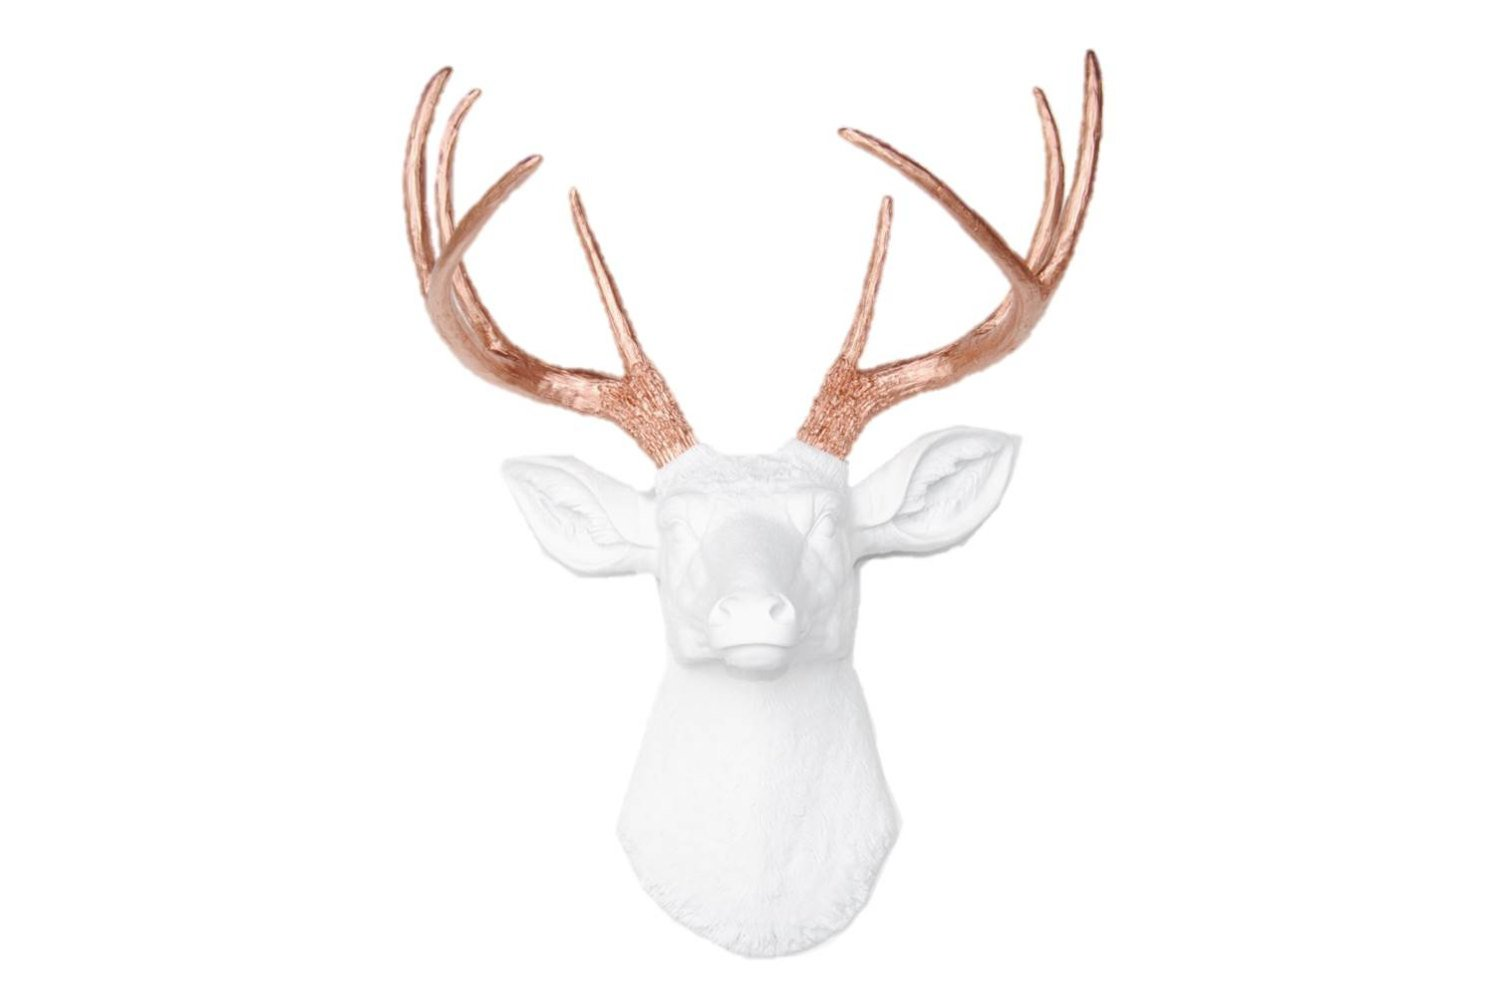 Near and Deer D0111 Faux Taxidermy 8 Point Deer Head Wall Mount, White/Rose Gold by Near and Deer